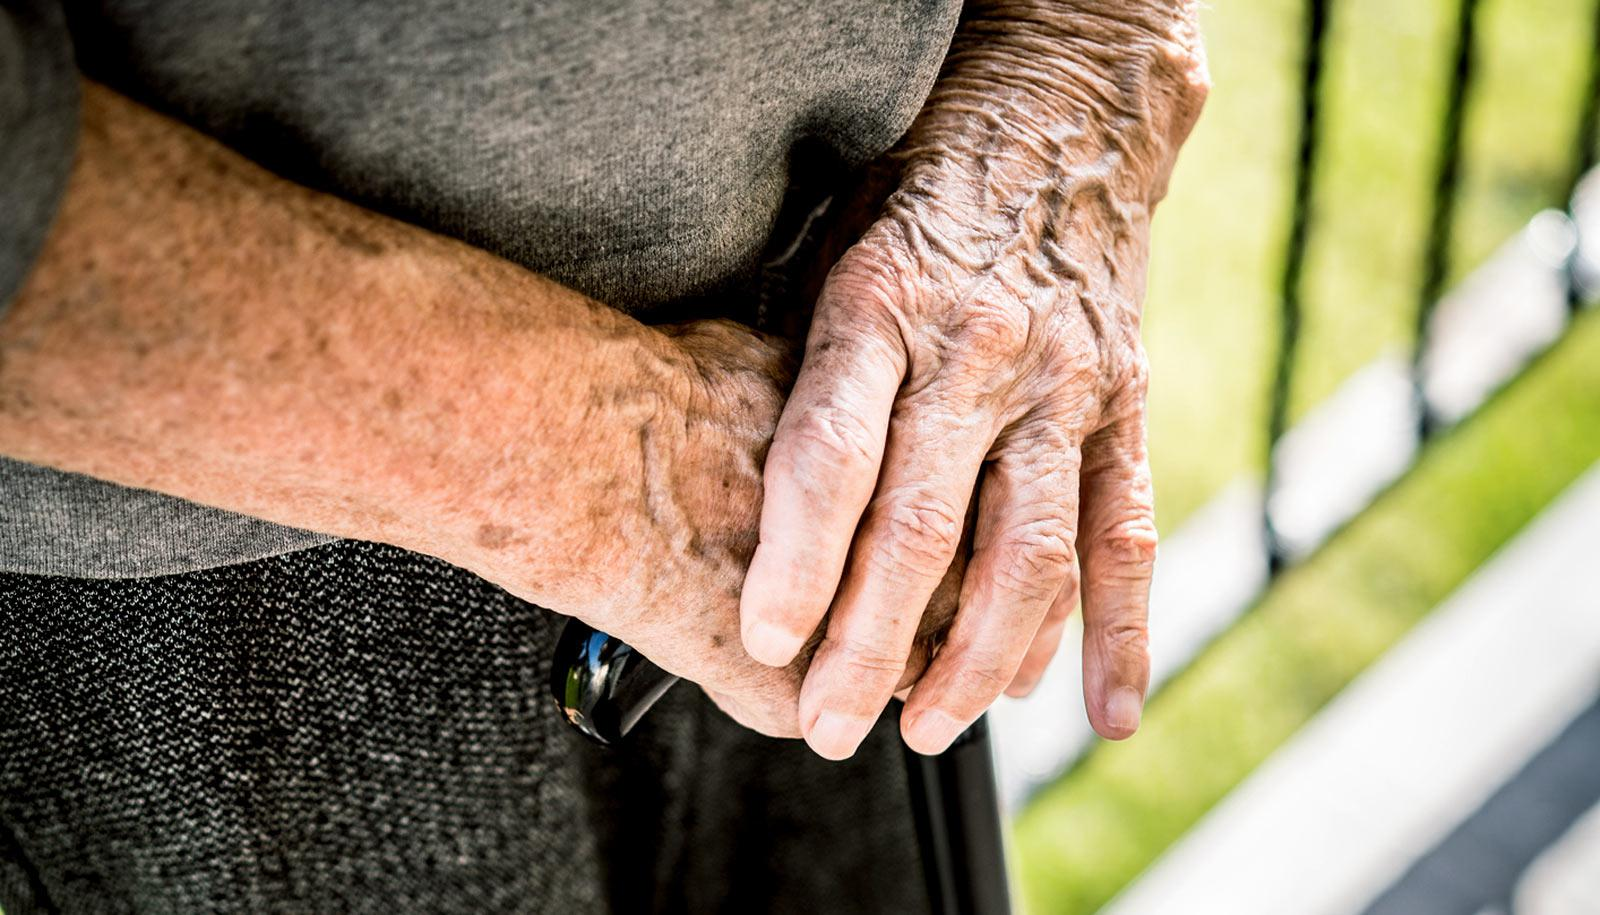 hands of elderly person holding cane